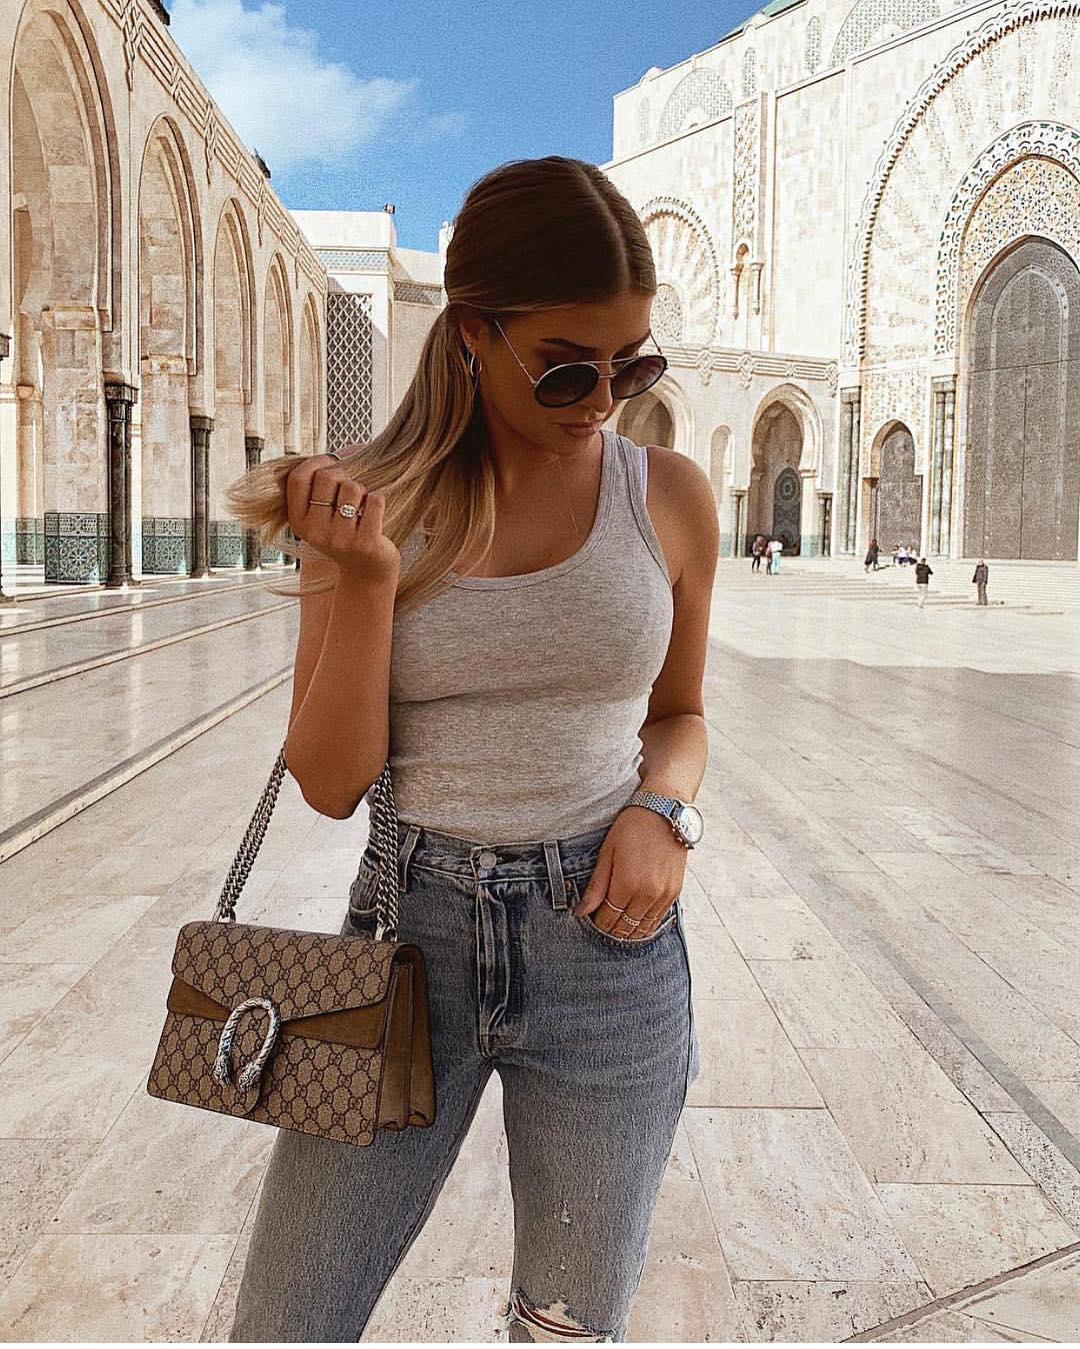 Grey Tank Top And Skinny Jeans In Blue For Summer Basics 2019